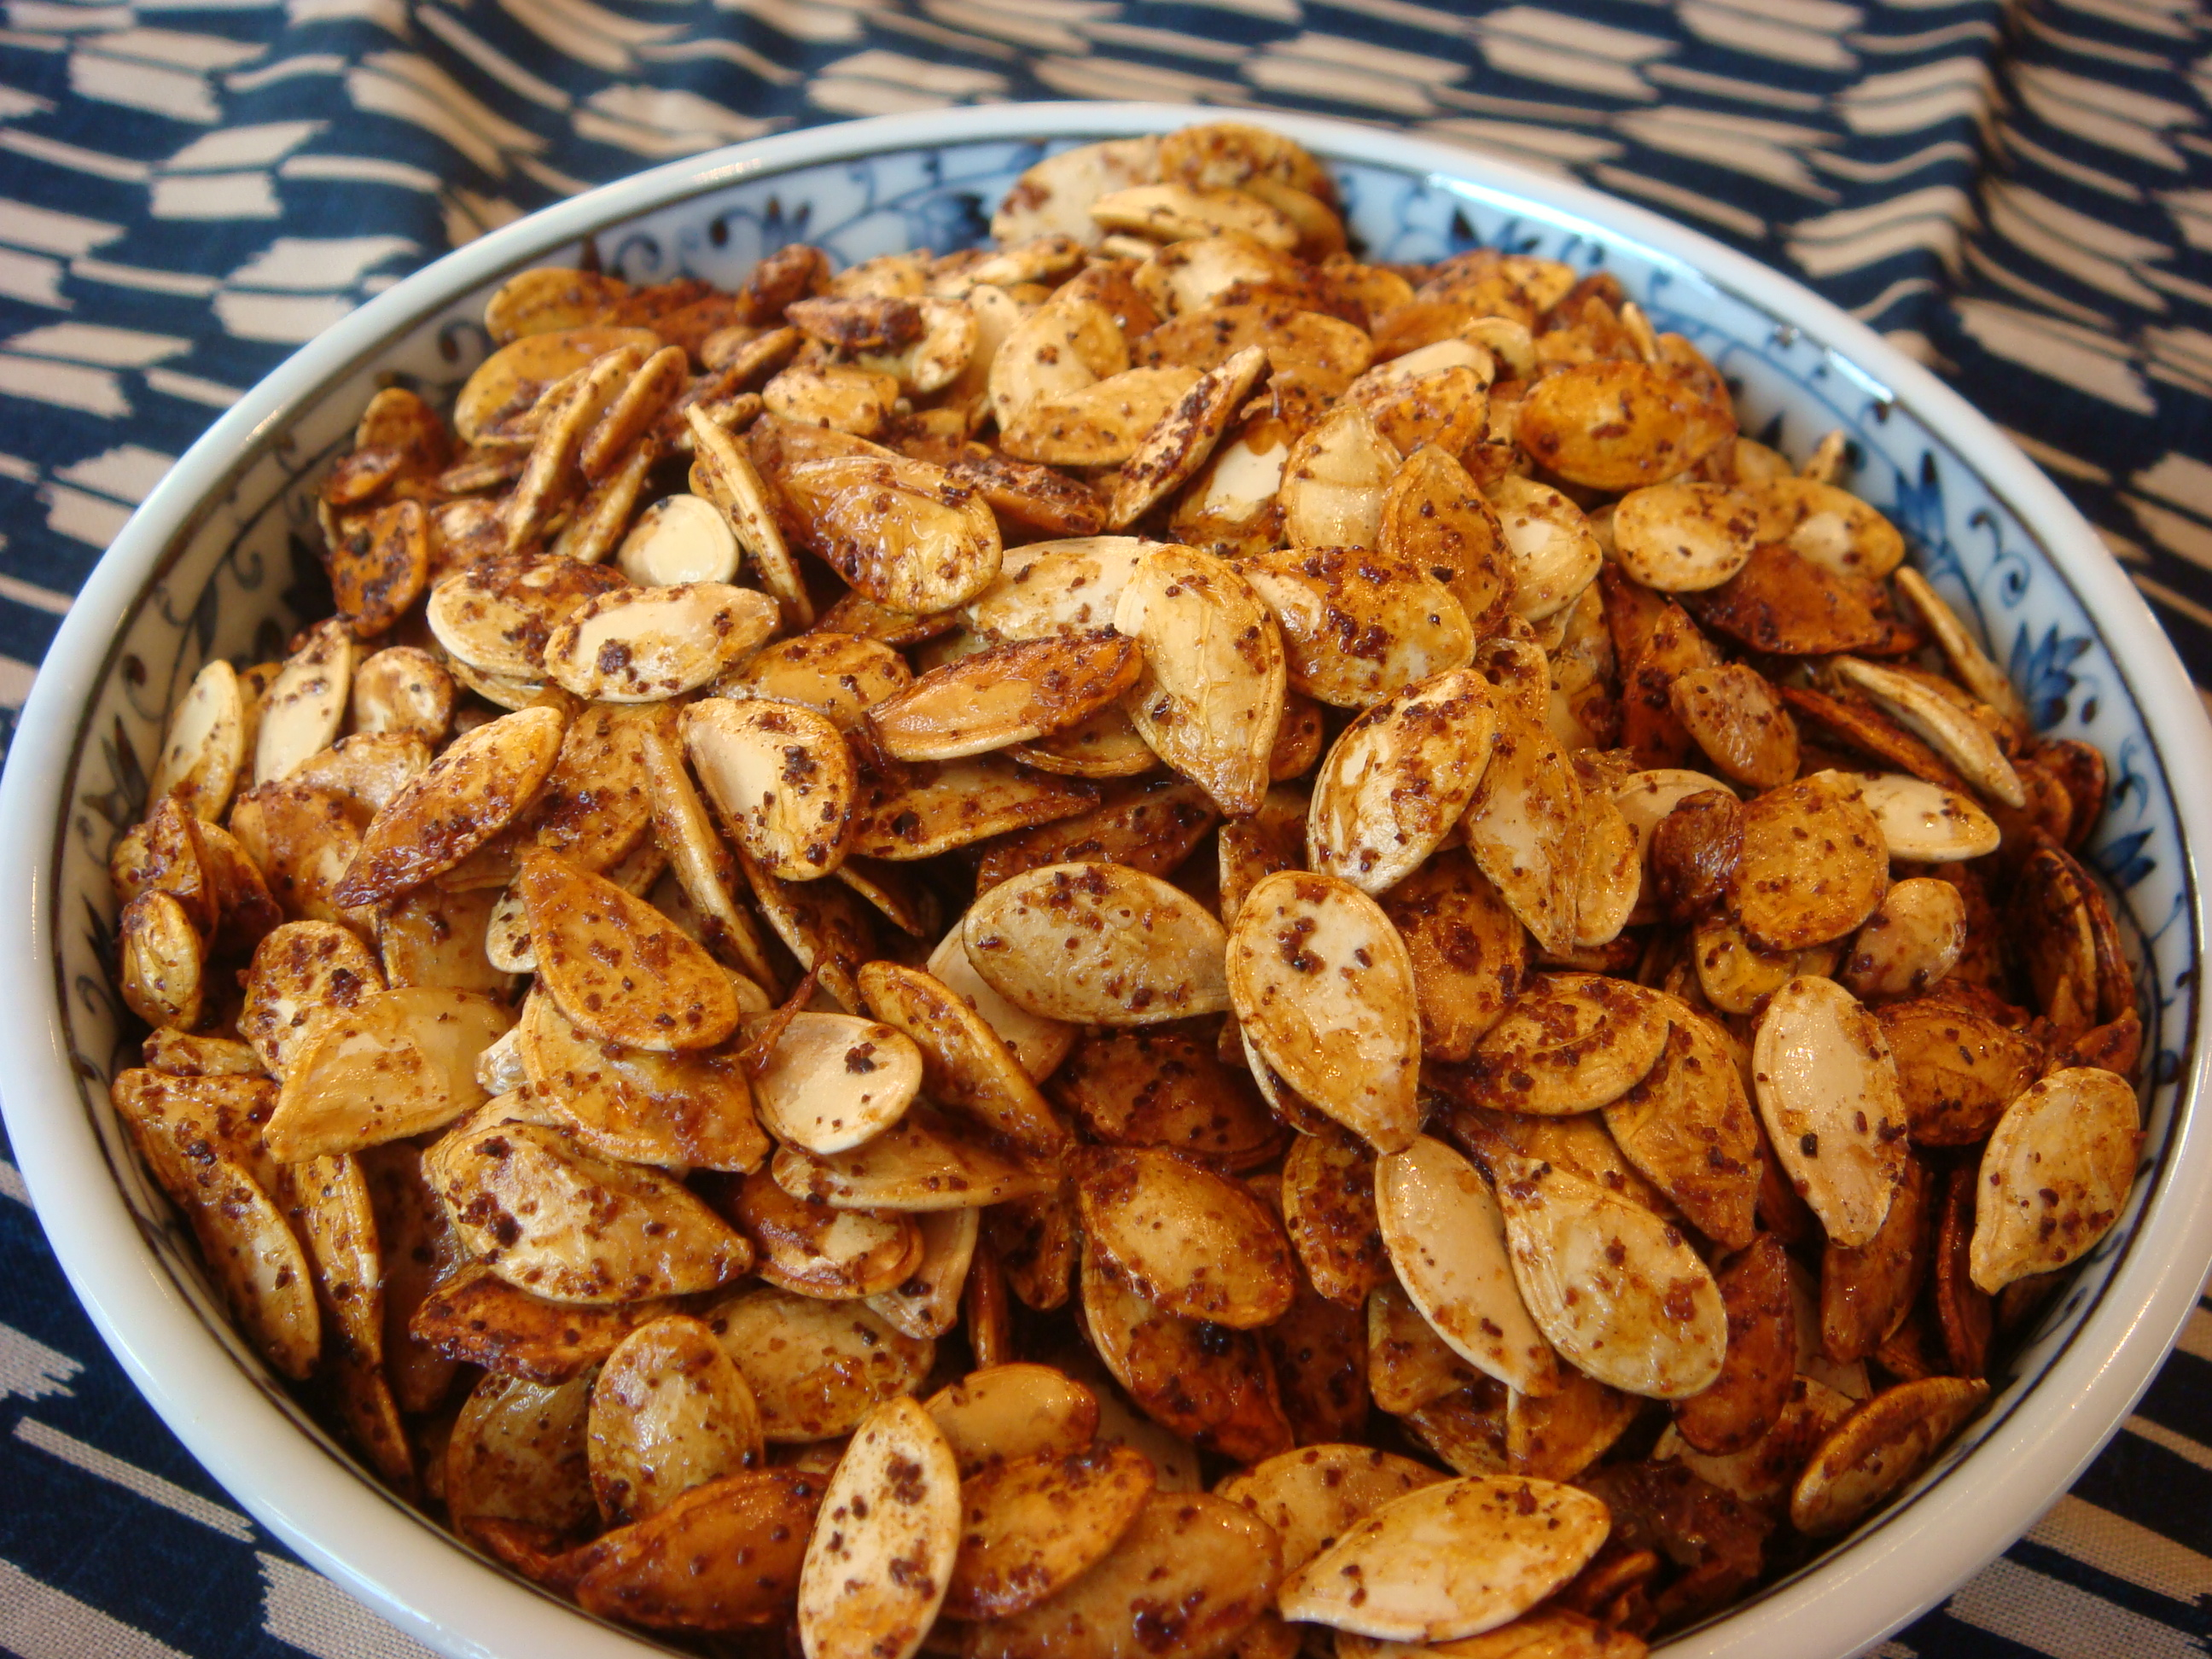 Roasted Pumpkin/Squash Seeds